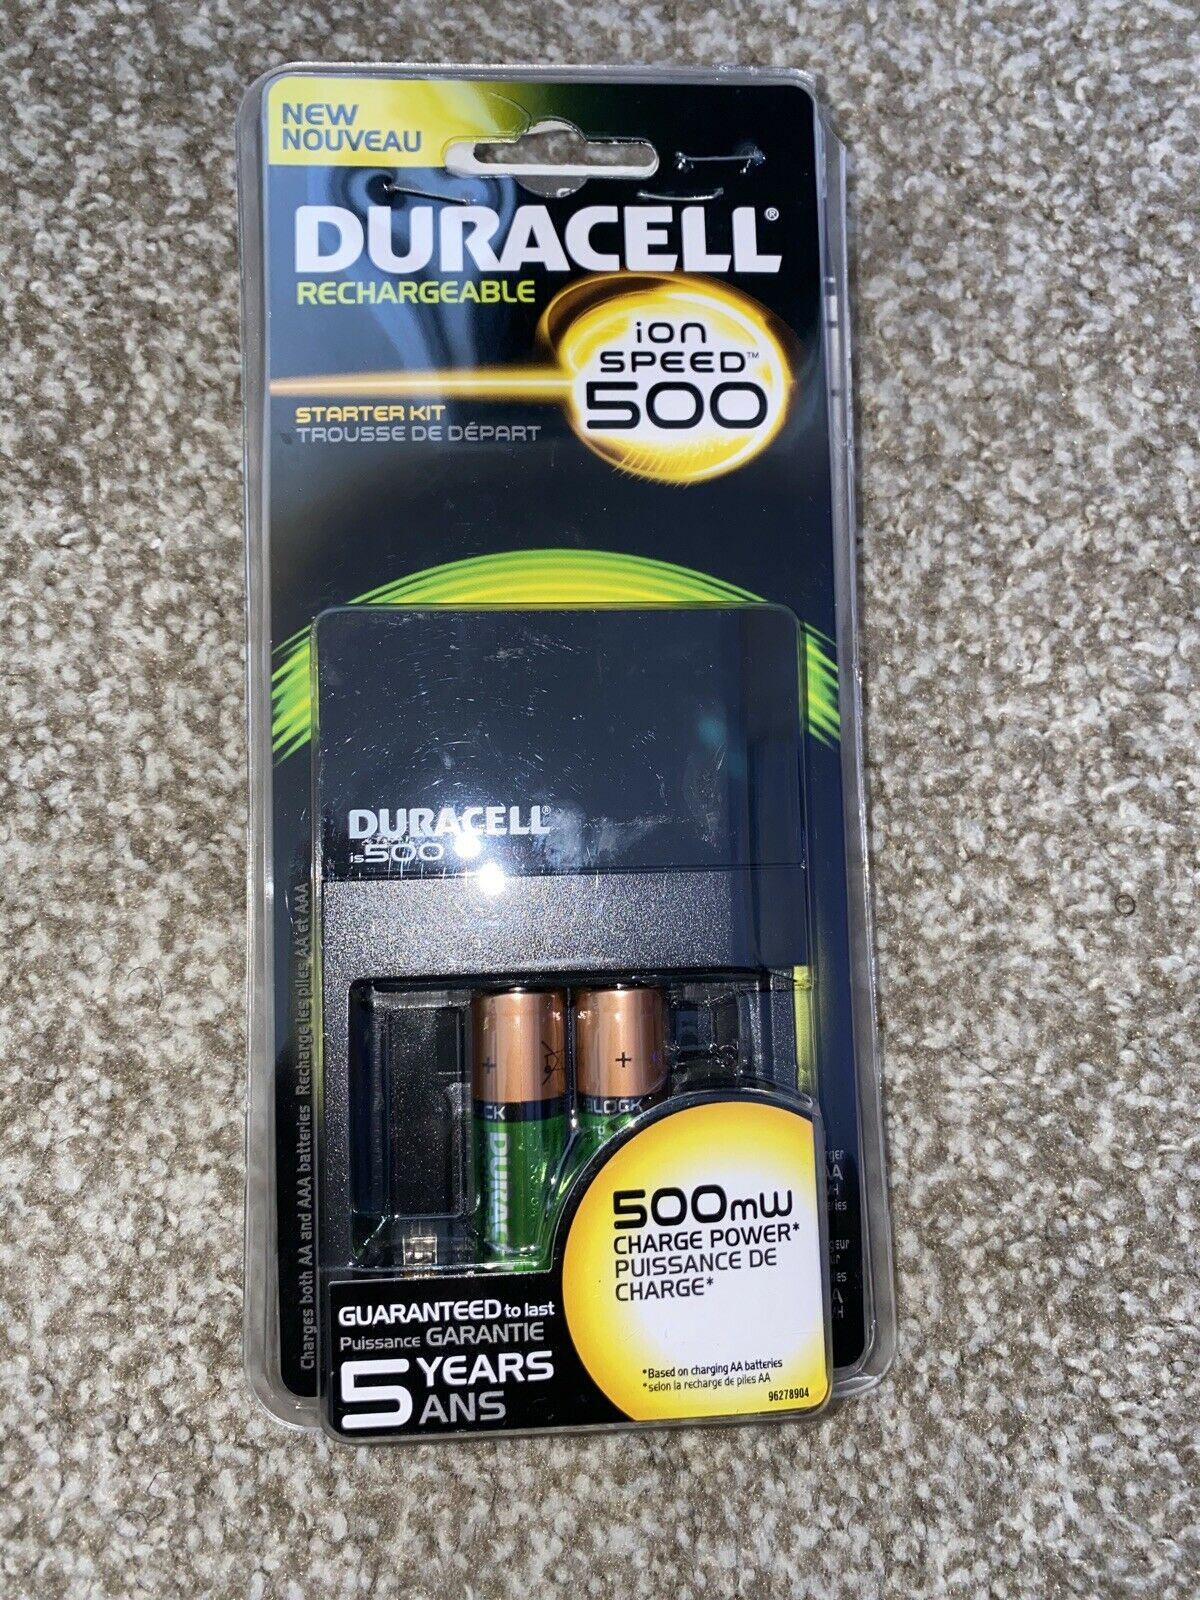 Duracell Ion Speed 500 Battery Charger w/2 AA Rechargeable Batteries